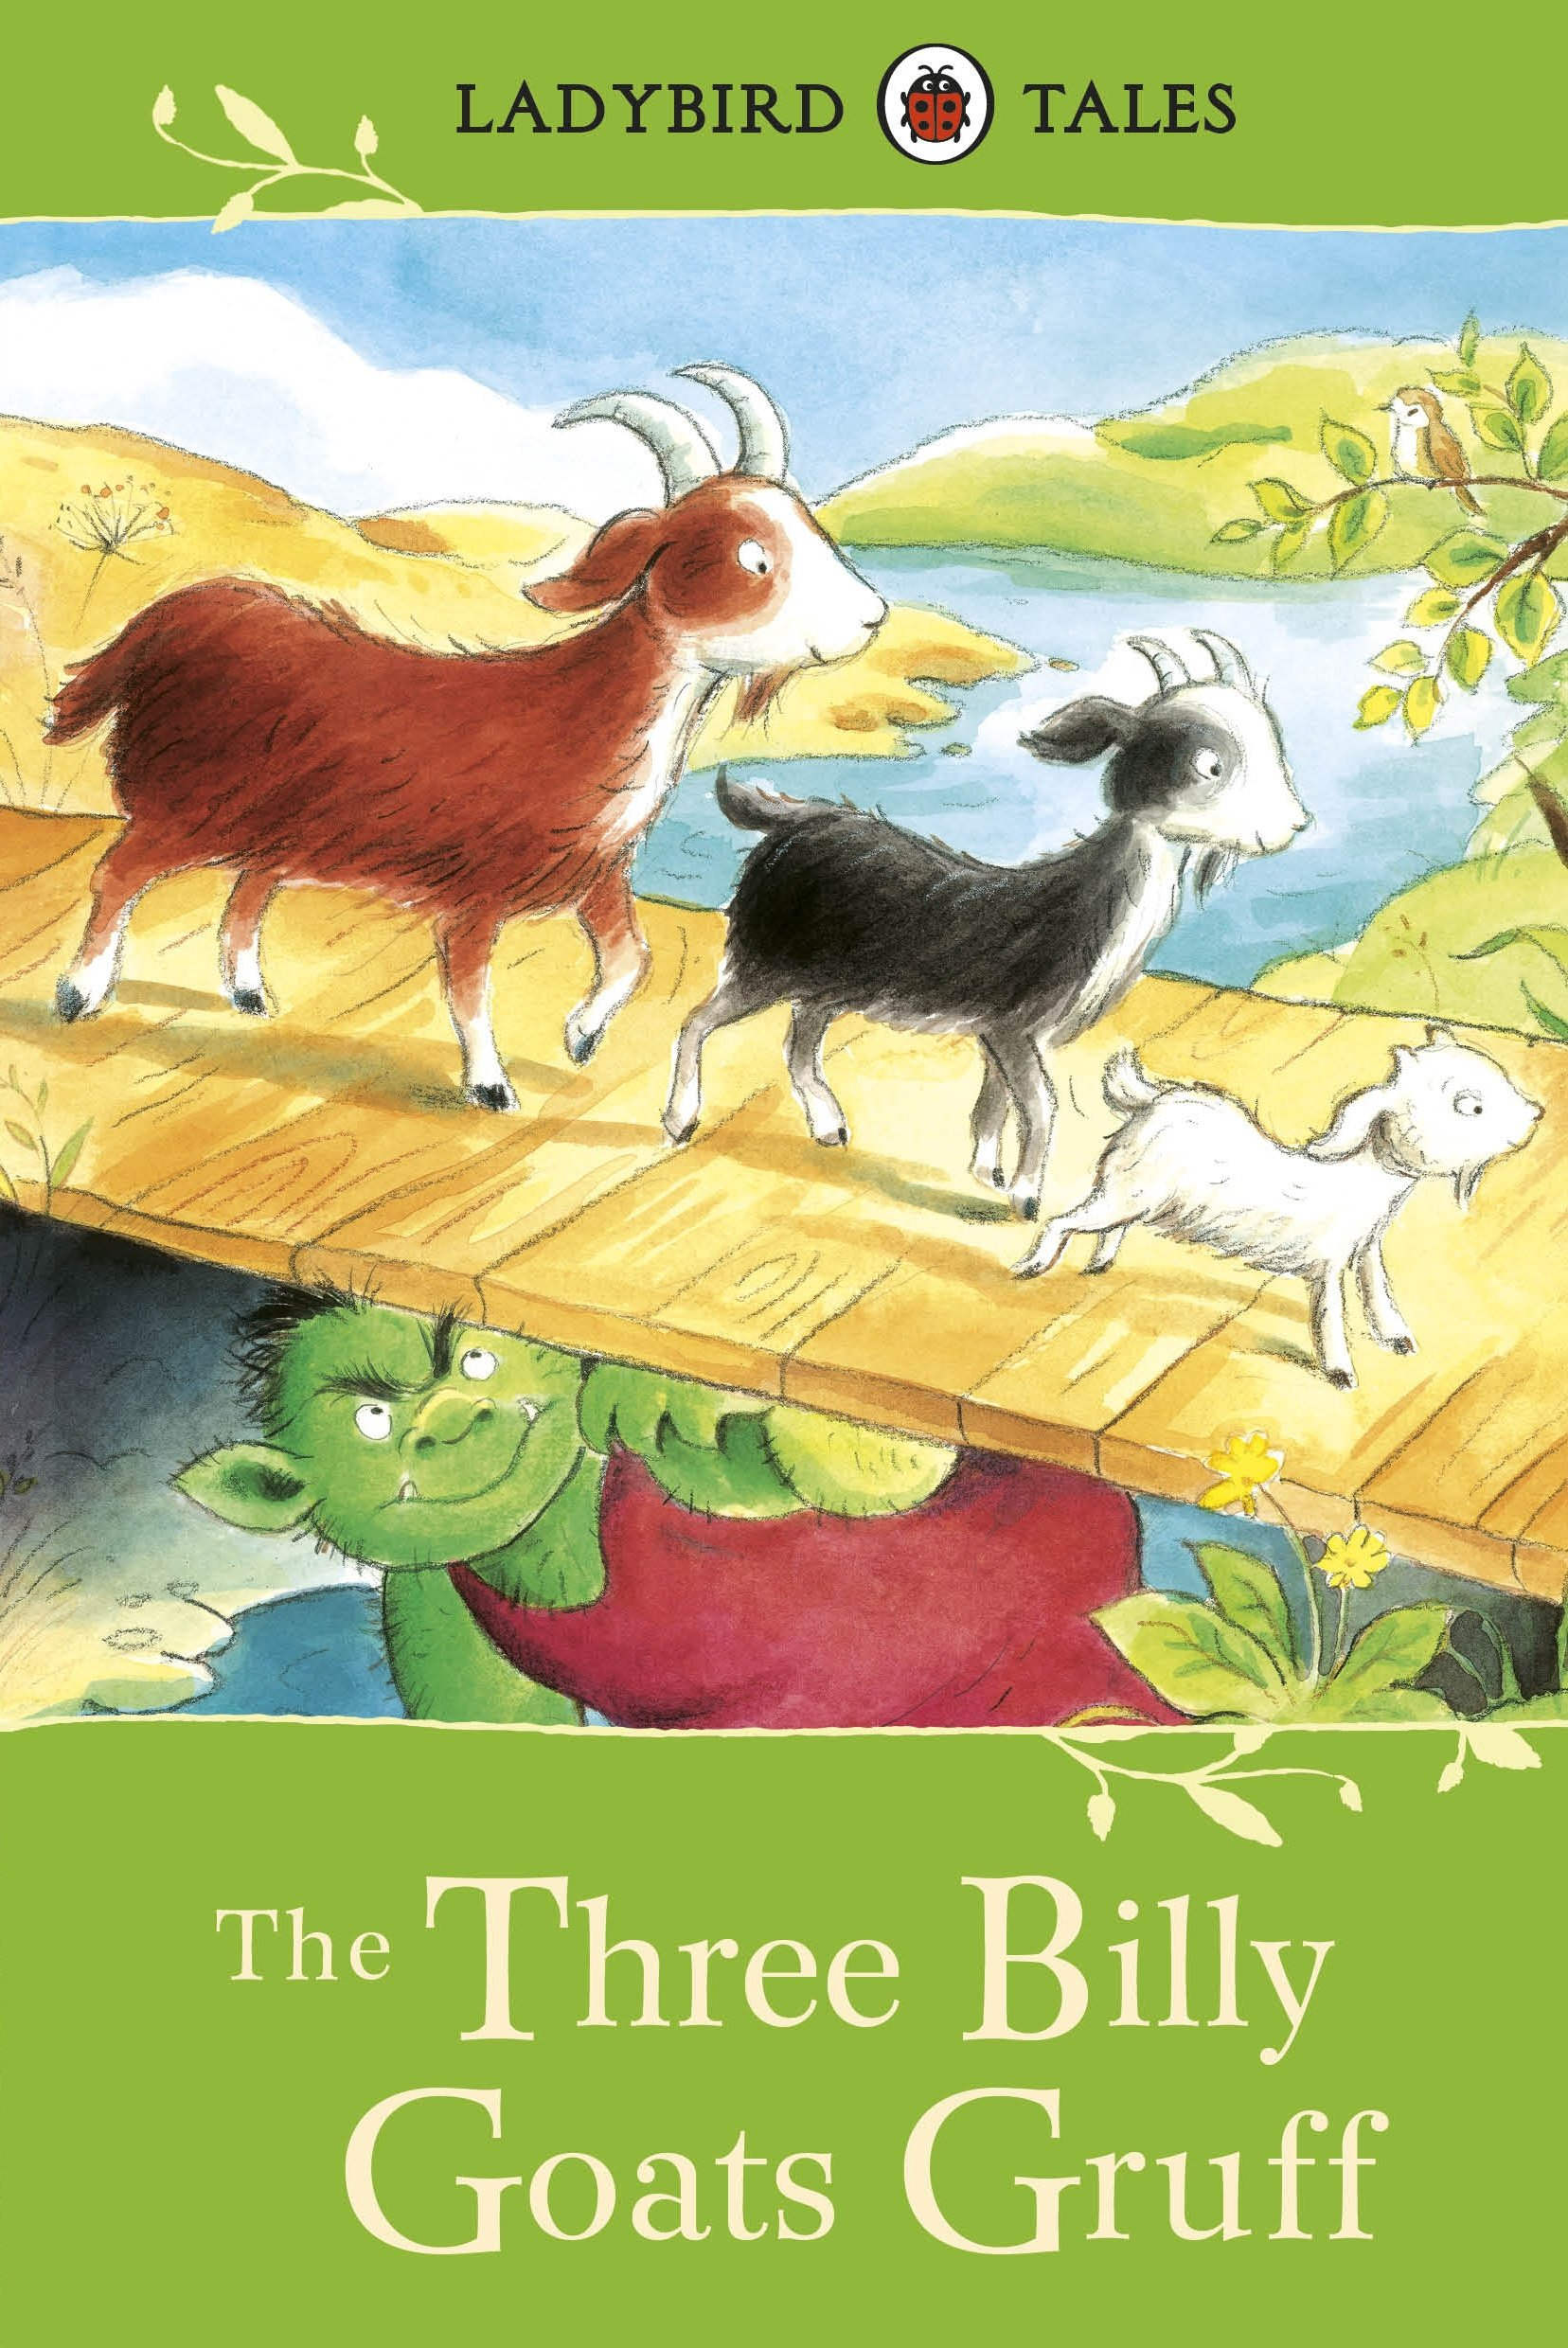 Worksheet Three Billy Goats Gruff Story ladybird tales the three billy goats gruff amazon co uk vera southgate 8601404347443 books